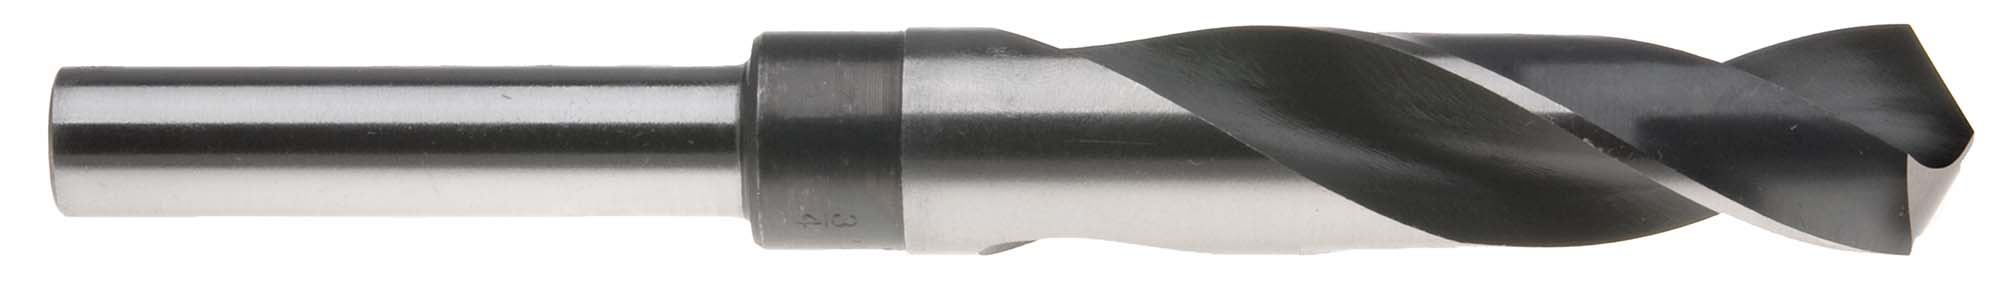 "1-3/16"" USA Drill Bit with 1/2"" Shank (S+D Type) High Speed Steel"